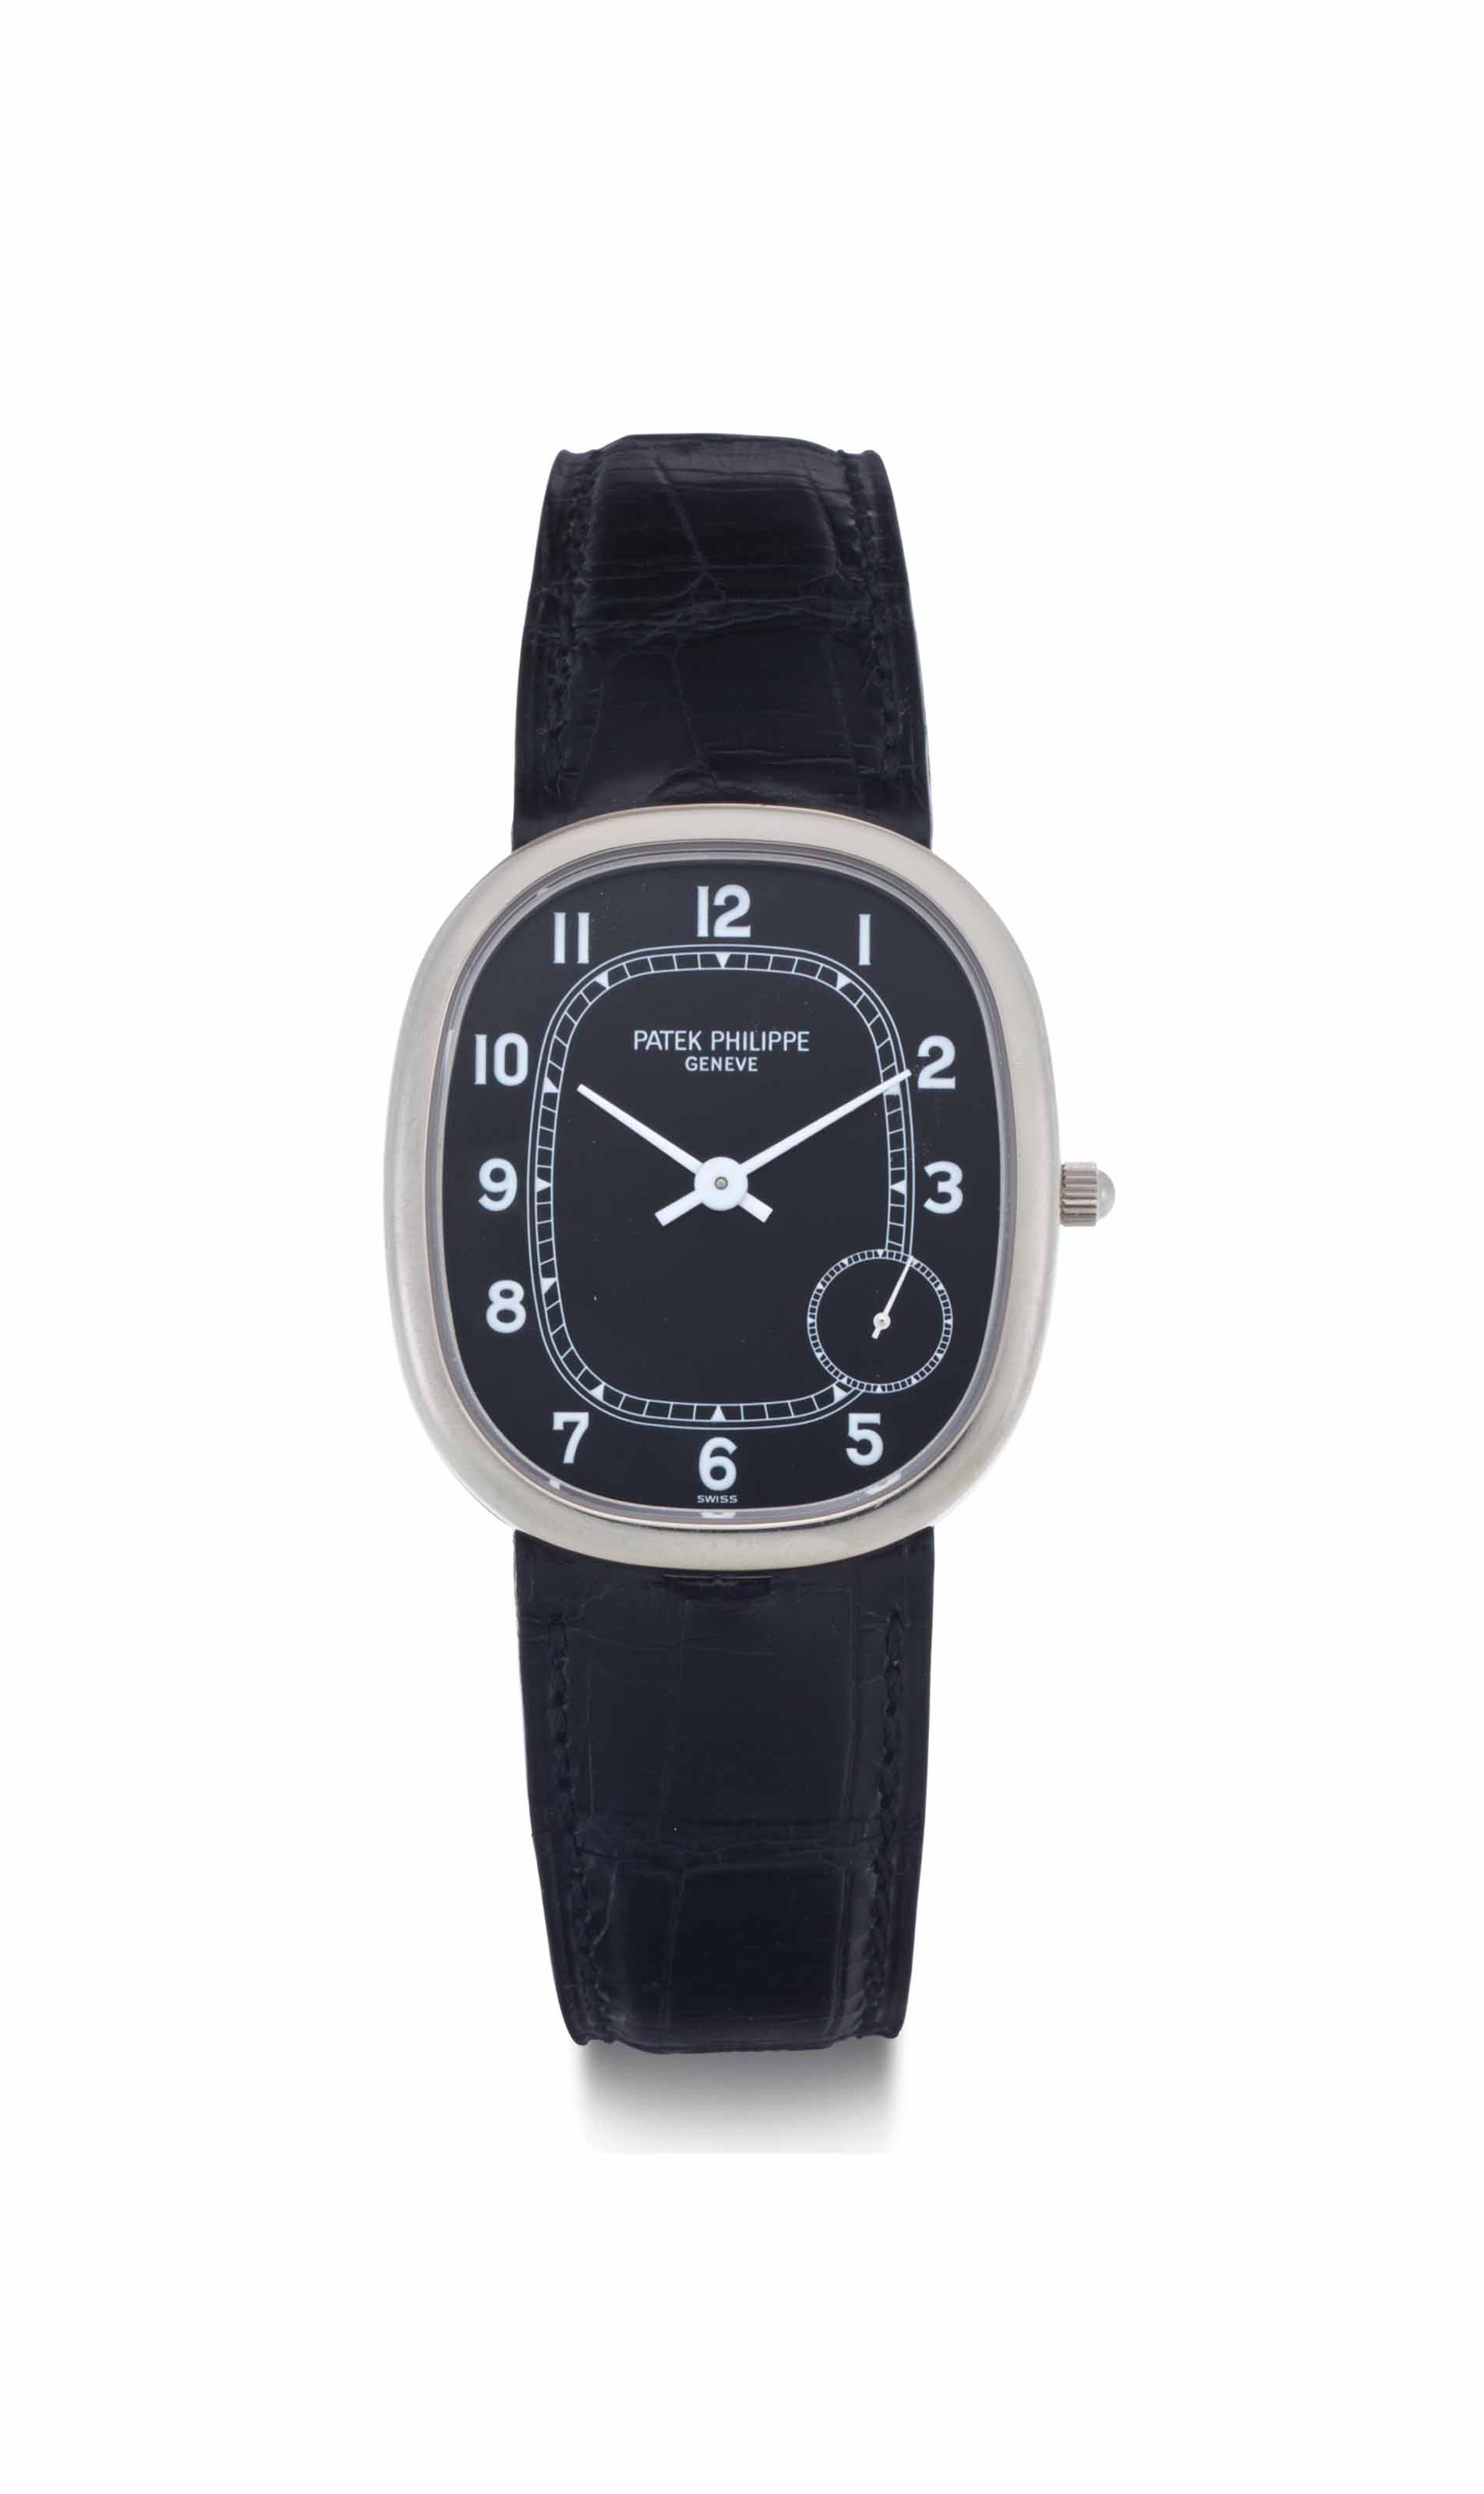 Patek philippe a large 18k white gold oval shaped automatic wristwatch signed patek philippe for Patek philippe geneve